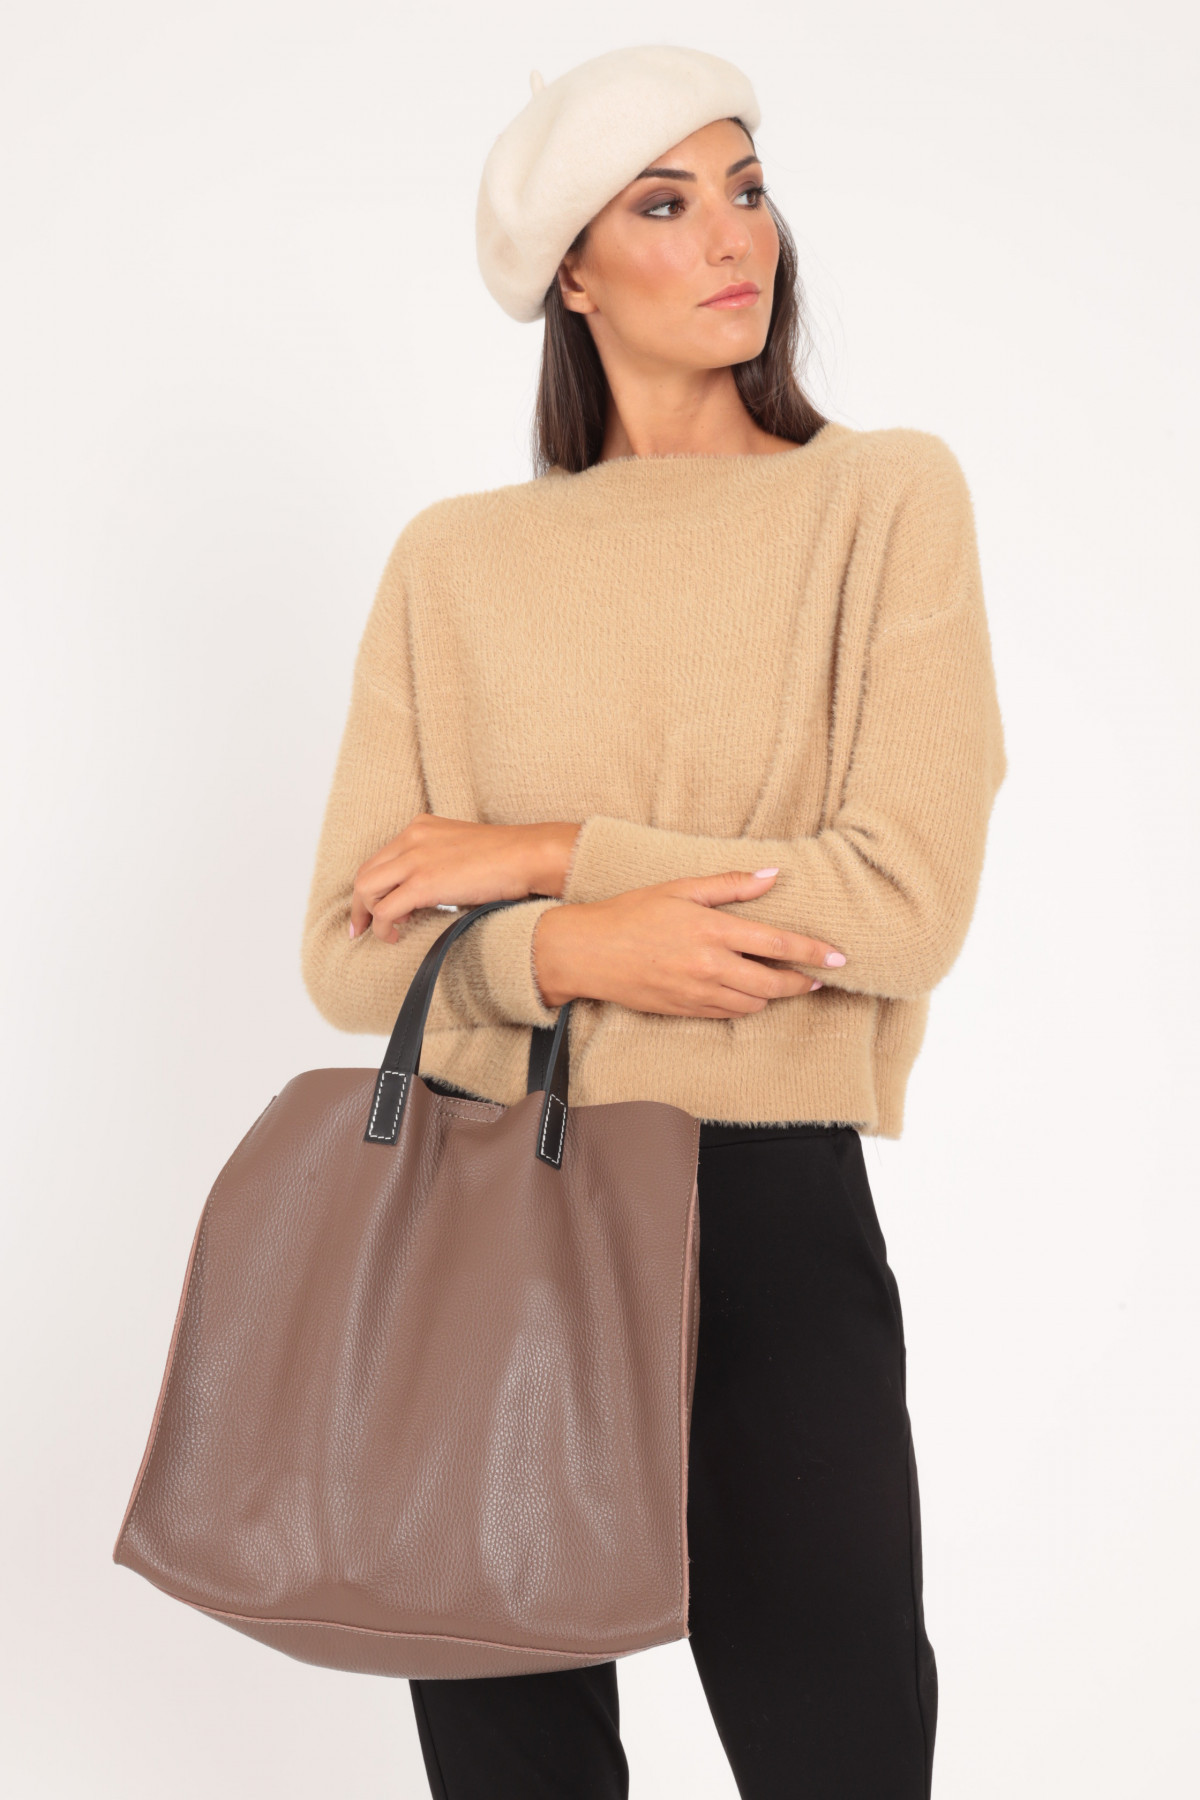 Leather Bag with Handles